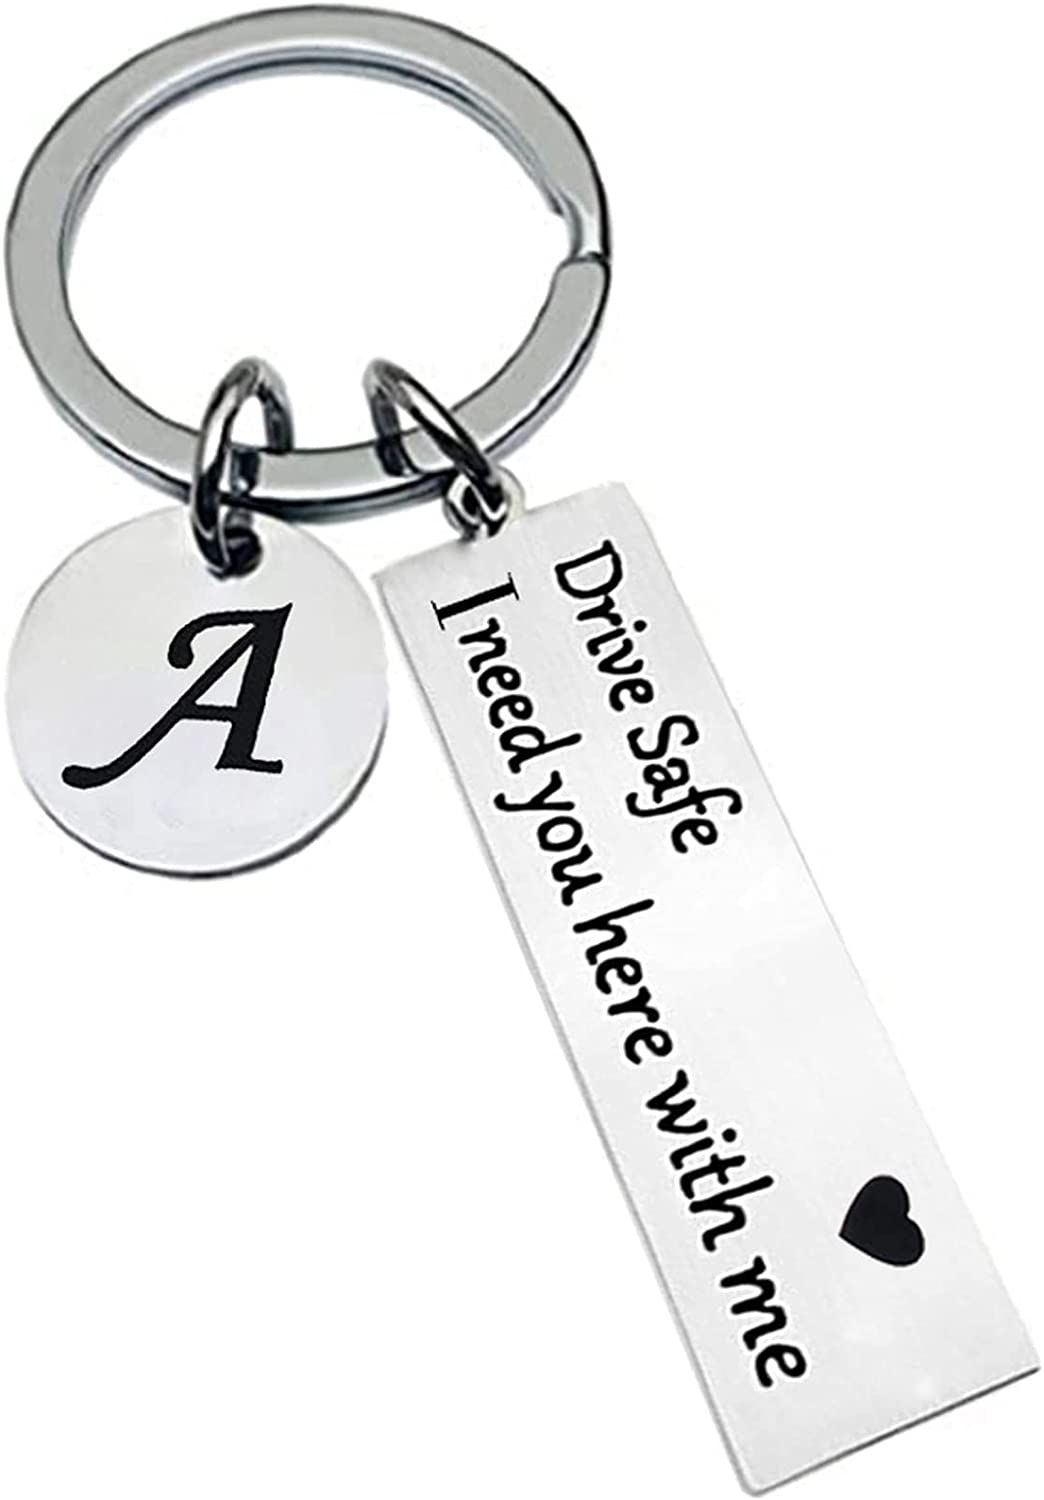 Drive safe SEAL limited product keychain for Sales of SALE items from new works boyfriend I keychains yo need you love